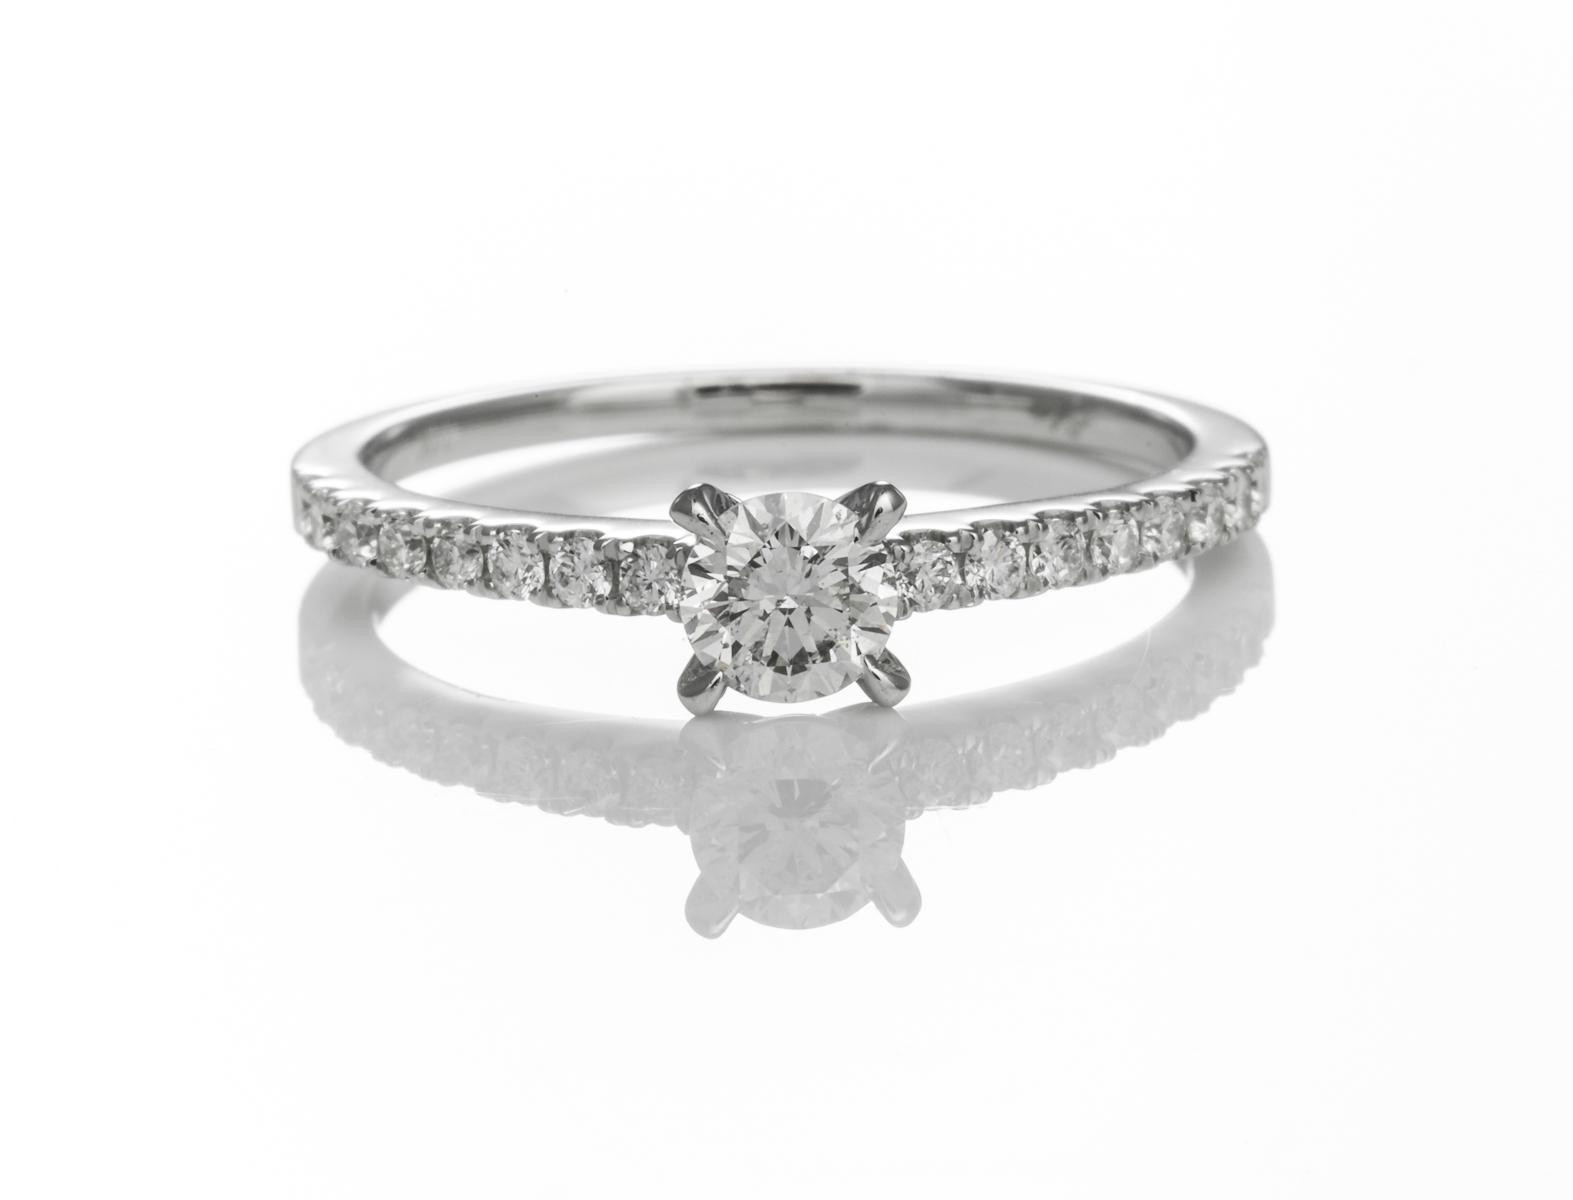 Timeless Round Brilliant Cut Diamond Engagement Ring Within Round Brilliant Diamond Engagement Rings (Gallery 19 of 25)